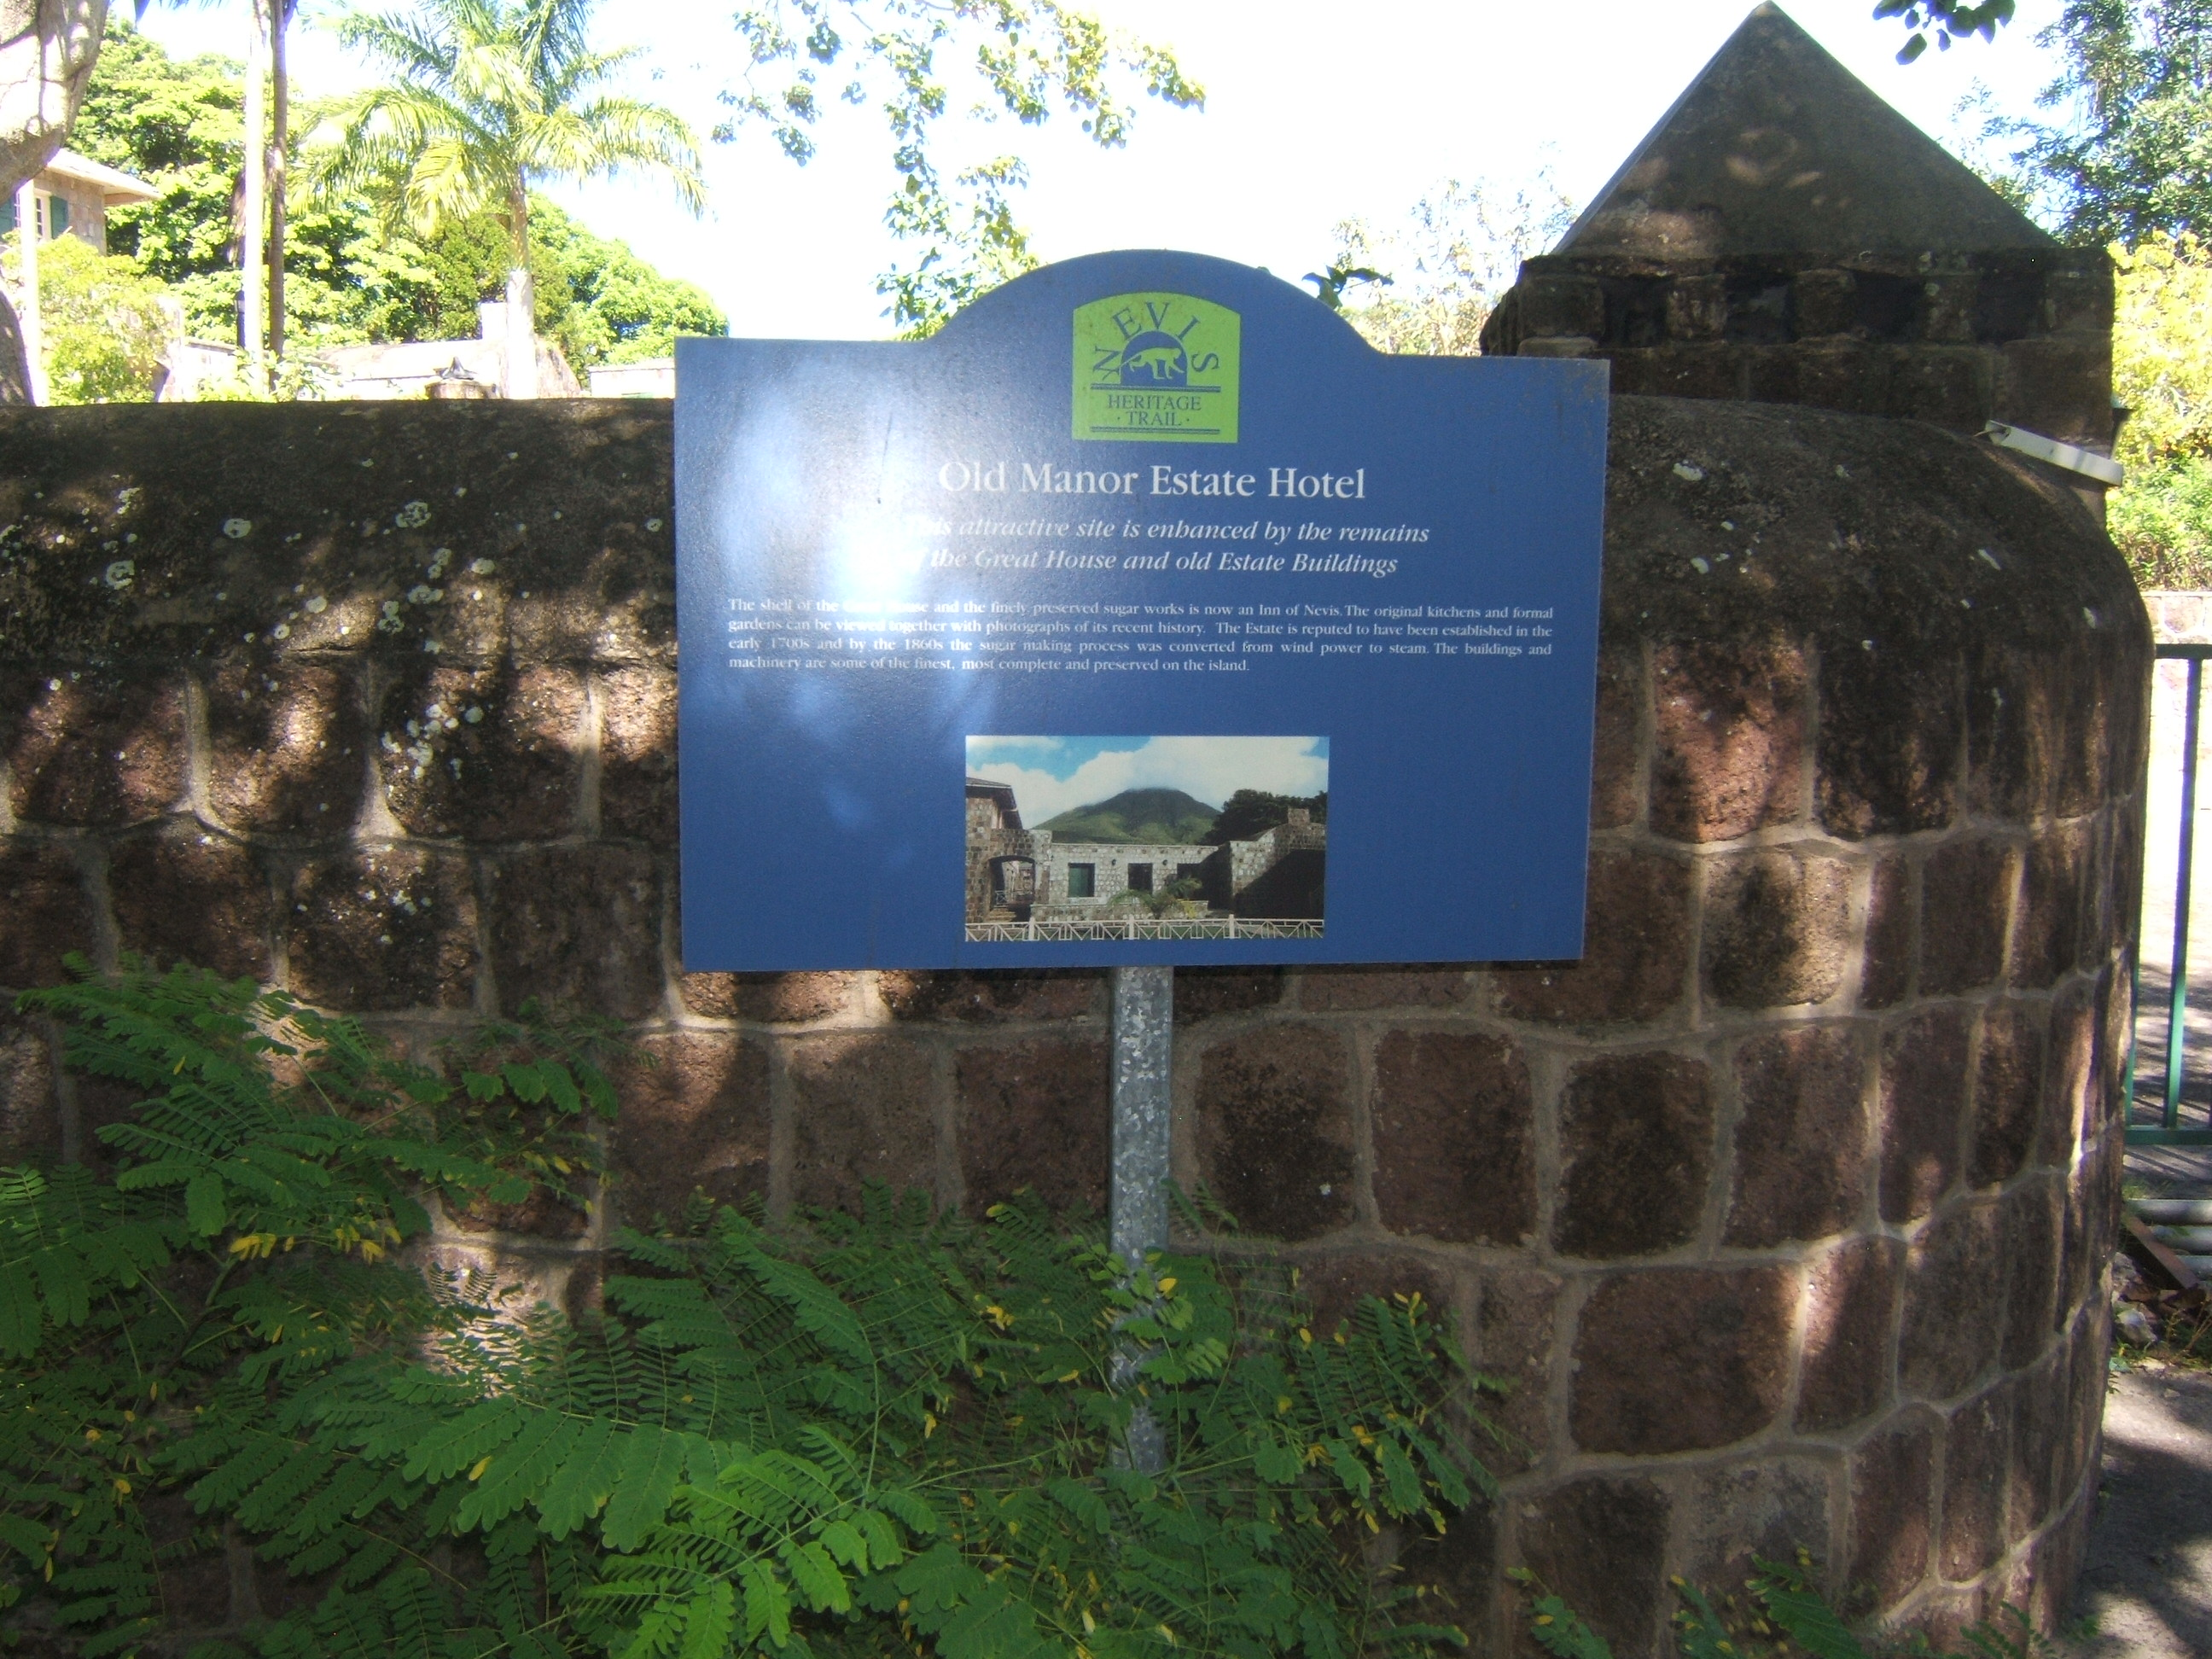 Nevisian Heritage Village South Nevis, Old Manor Estate hotel sign in Nevis. Wonderful old buildings with ...